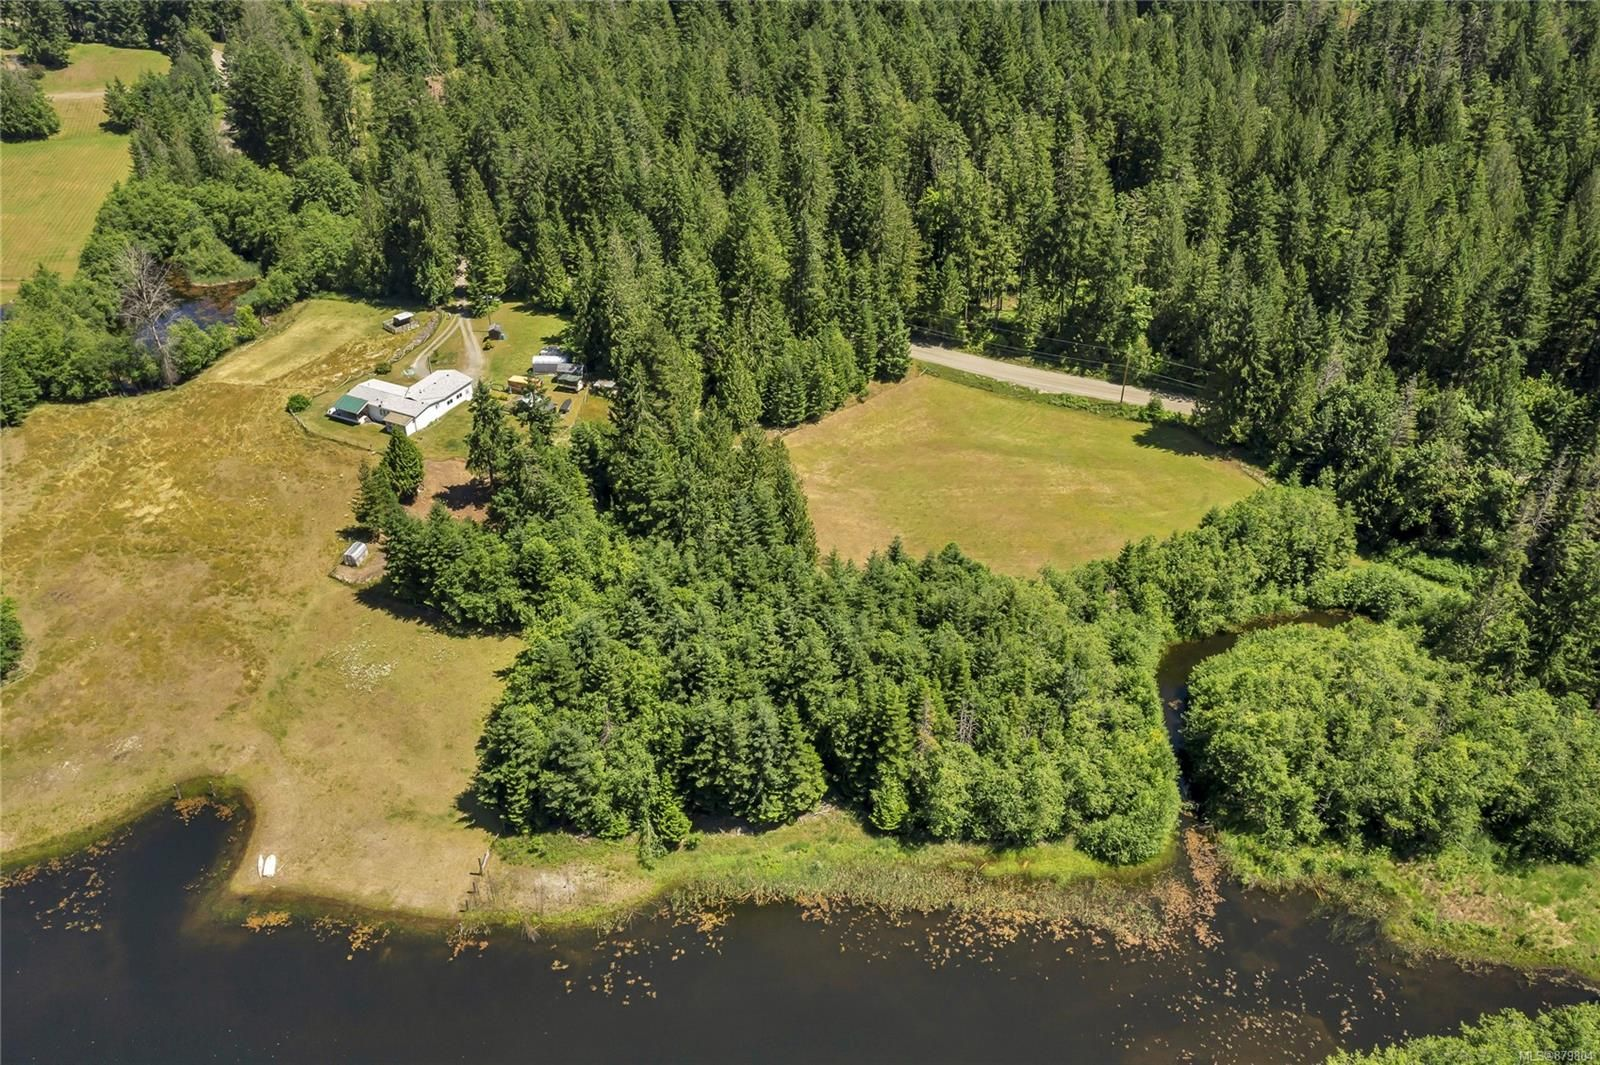 Photo 41: Photos: 3596 Riverside Rd in : ML Cobble Hill Manufactured Home for sale (Malahat & Area)  : MLS®# 879804